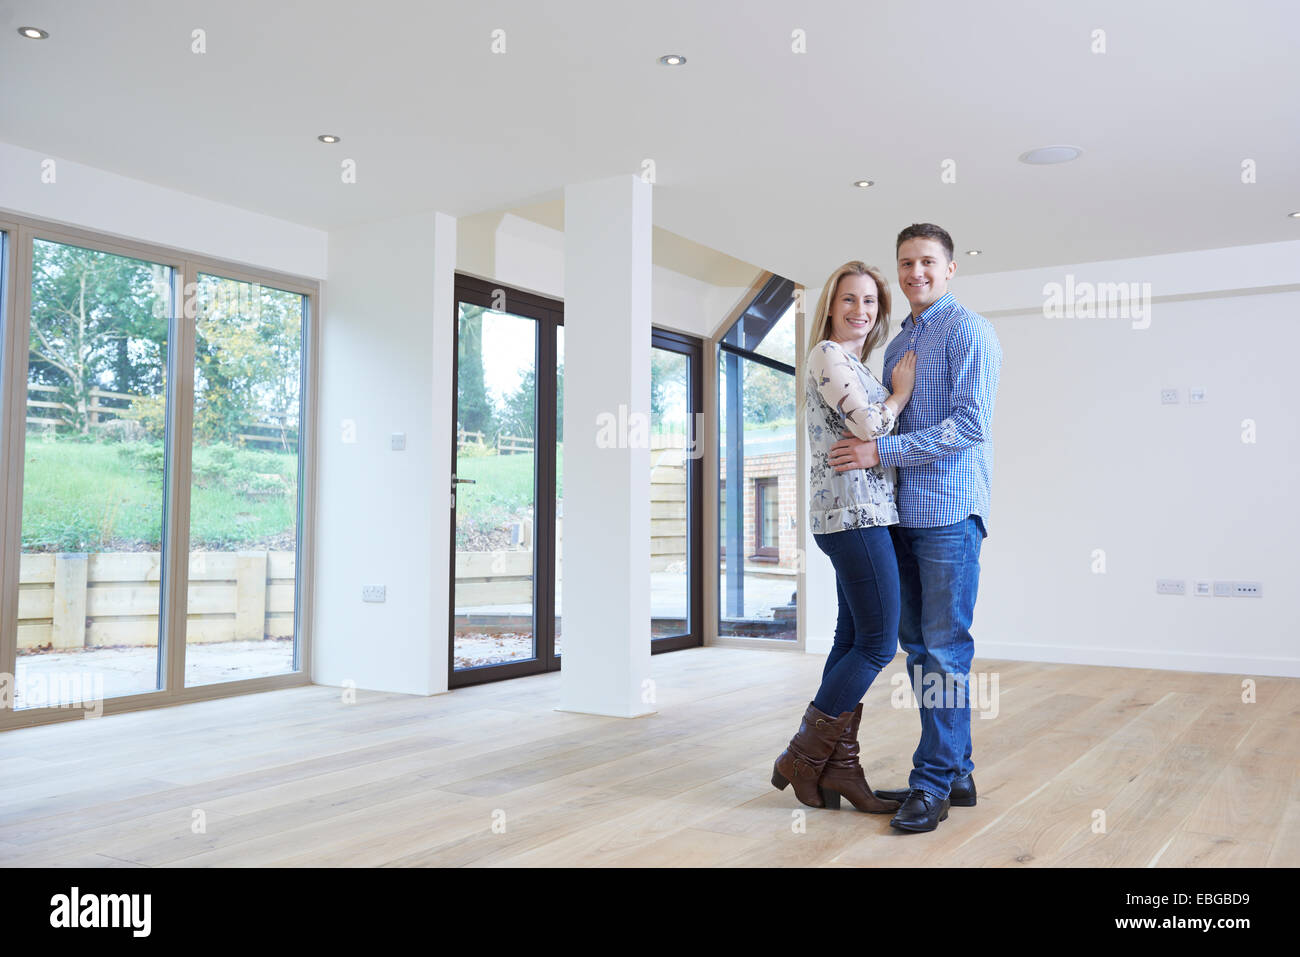 Portrait Of Happy Young Couple In New Home - Stock Image